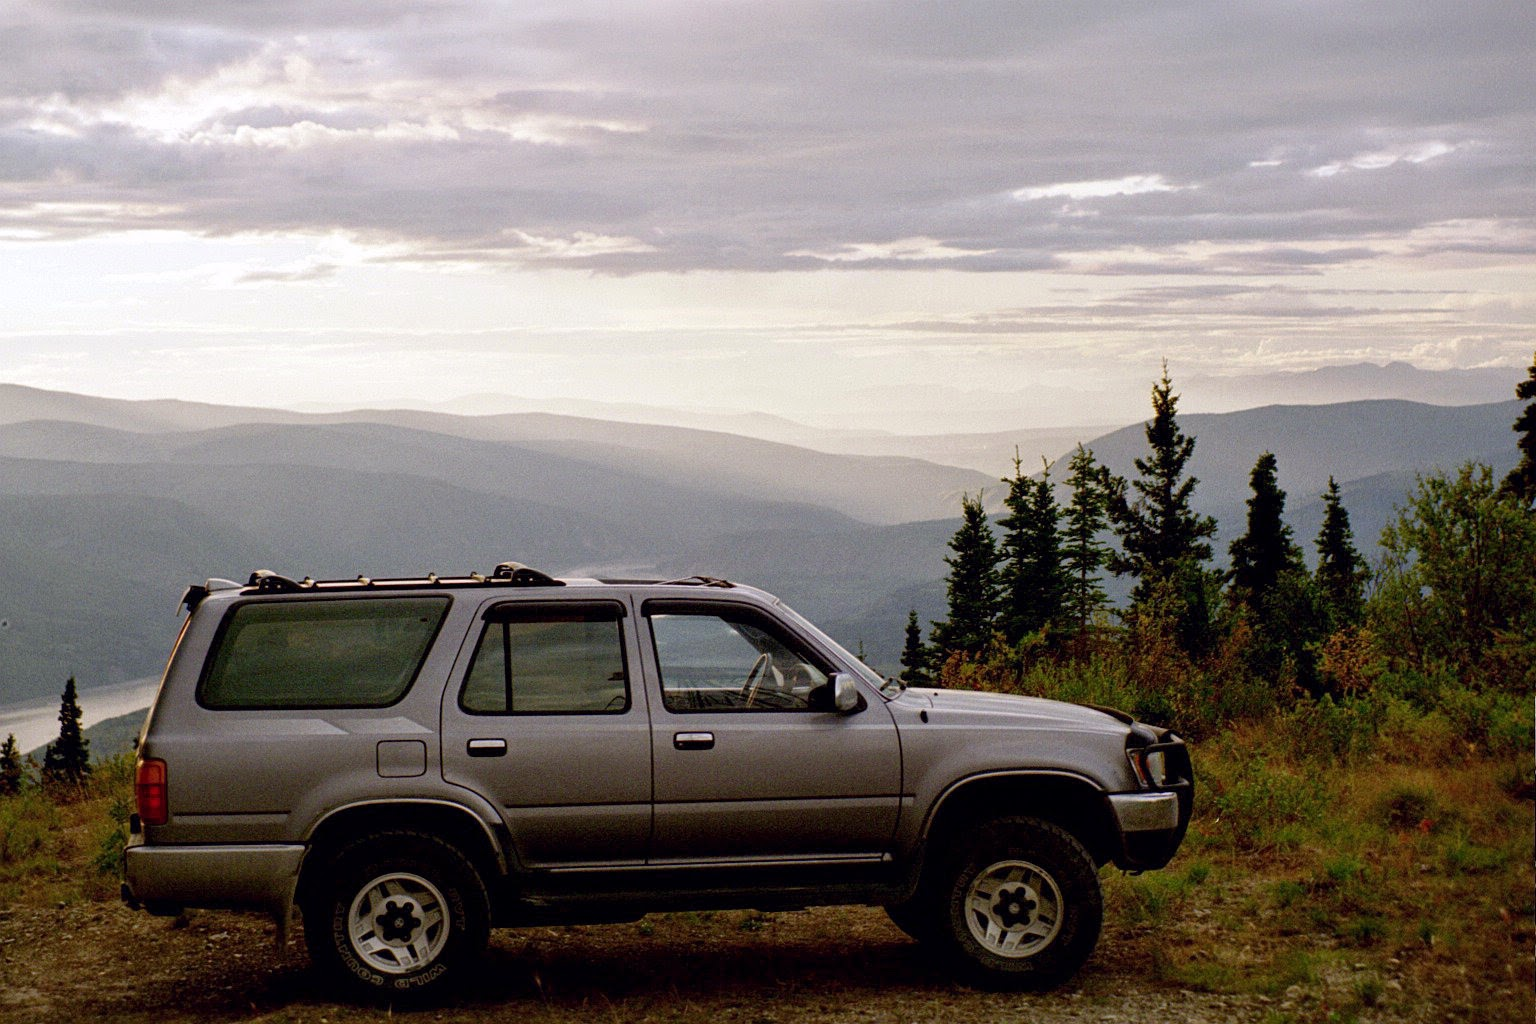 when you plan a road trip, make sure to get your car ready! An older gray SUV is parked on a high hill above a river.